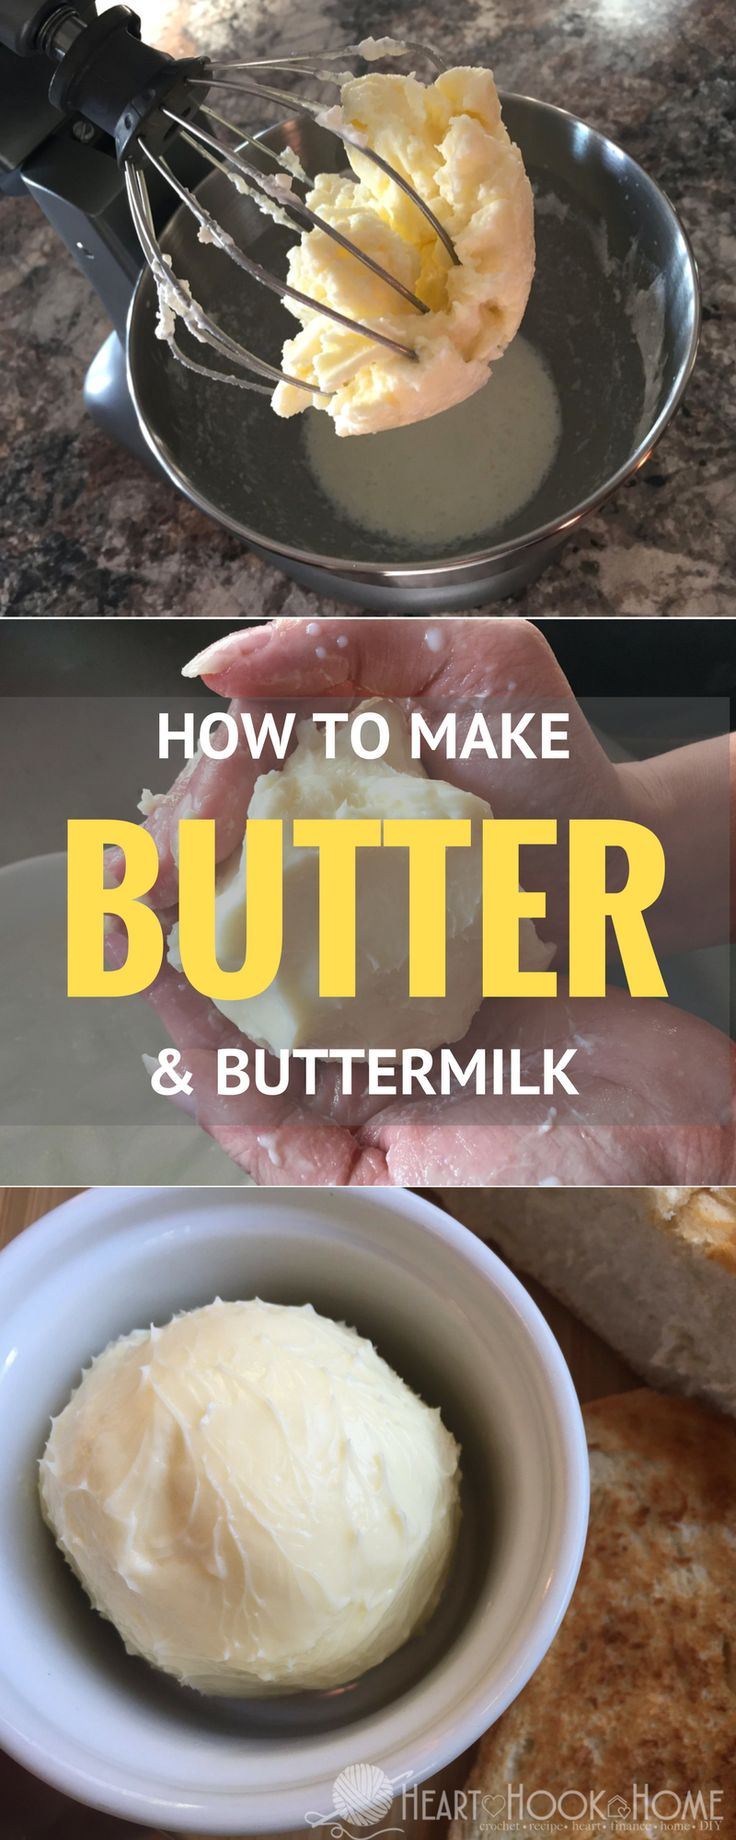 What's better than fresh baked bread? Fresh HOMEMADE butter to eat it with! Let us show you how to make butter and buttermilk with this easy tutorial.